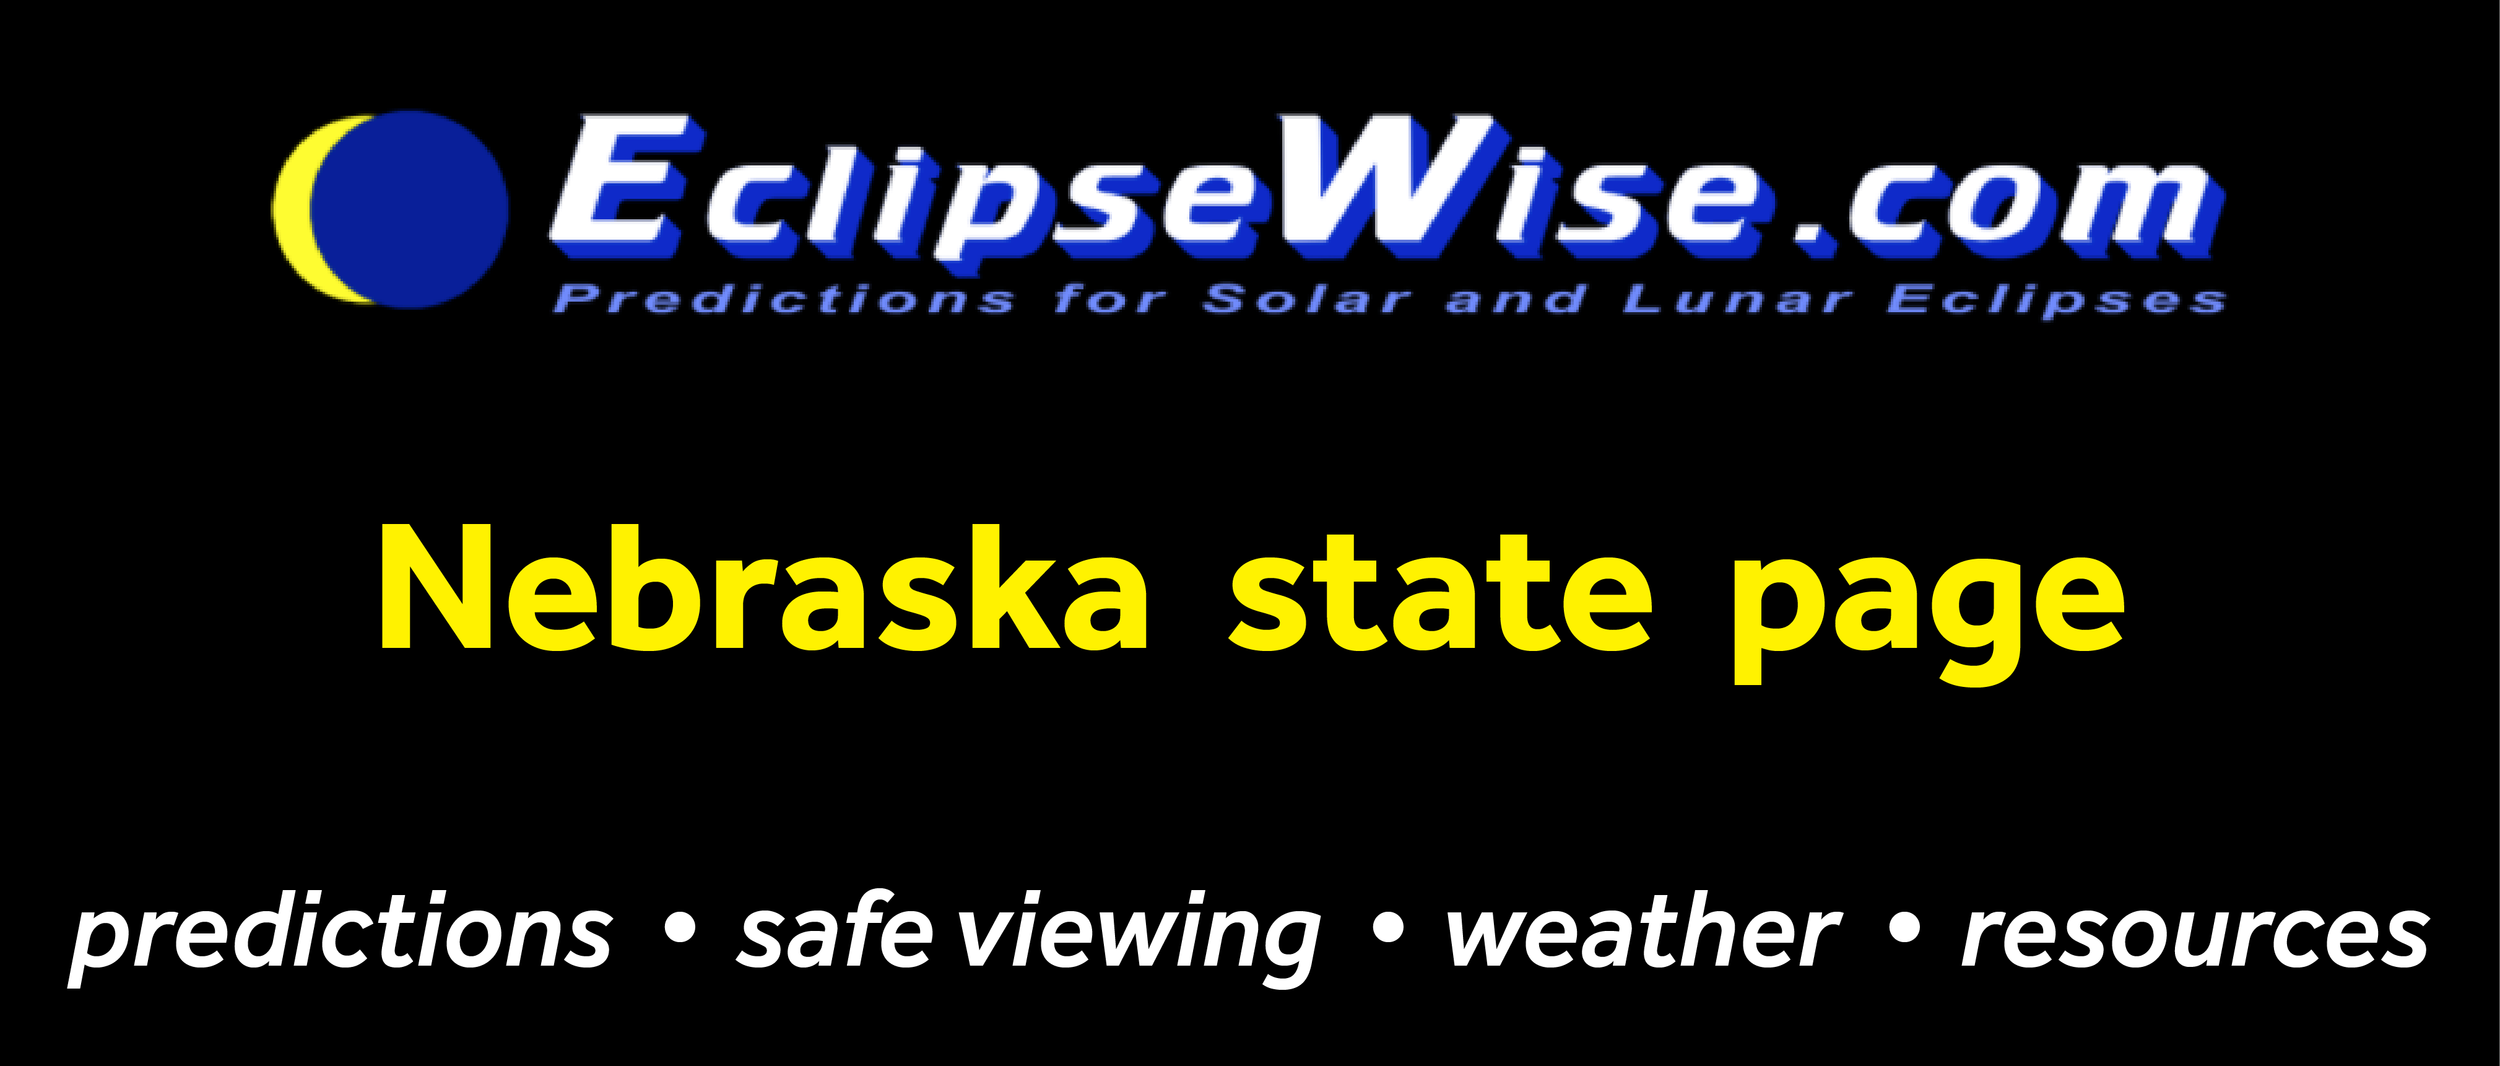 CLICK FOR THE Nebraska STATE PAGE ON   ECLIPSEWISE.COM   .  THE SITE PROVIDES THE MOST COMPREHENSIVE AND AUTHORITATIVE STATE PAGES FOR THE 2017 ECLIPSE. ECLIPSEWISE.COM IS BUILT BY FRED ESPENAK, RETIRED NASA ASTROPHYSICIST AND THE LEADING EXPERT ON ECLIPSE PREDICTIONS.